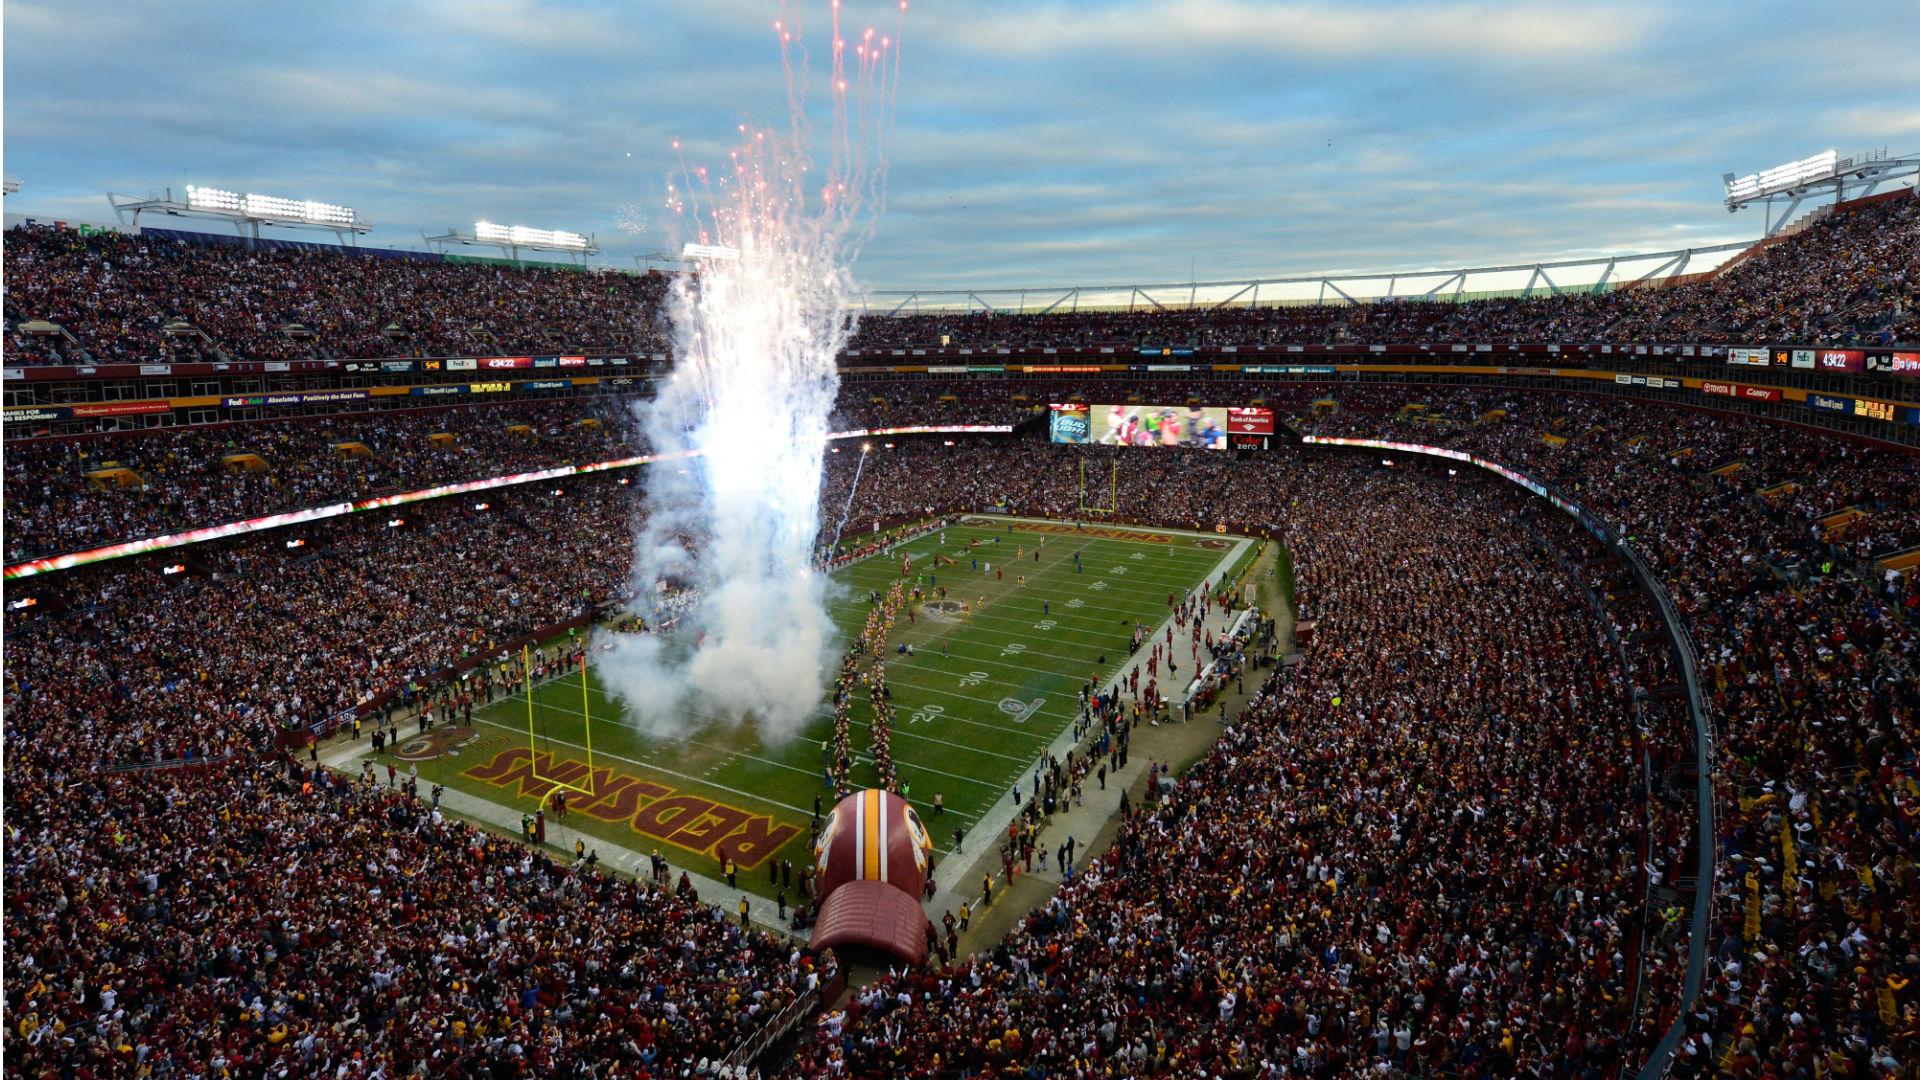 Redskins asked by sponsor to change name; investors petition companies to abandon Washington 1